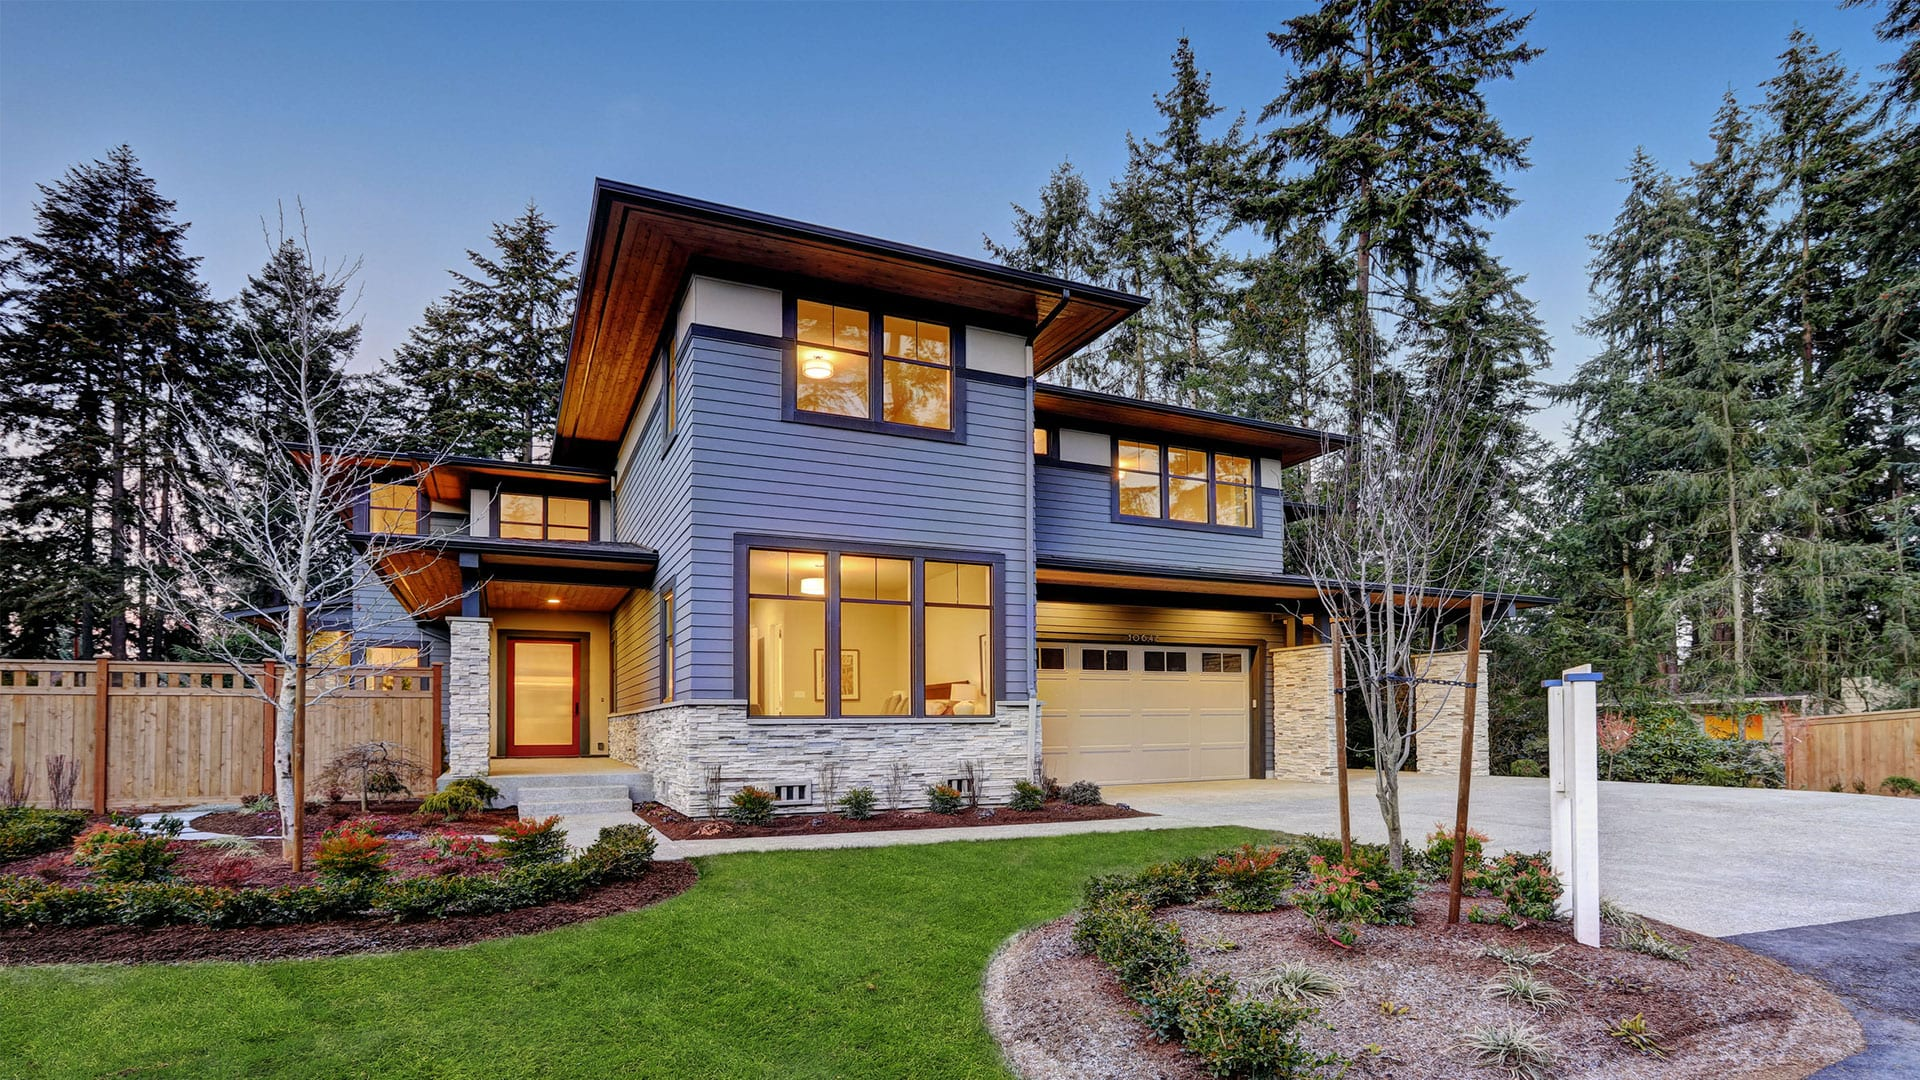 lowest mortgage rates, which lenders offer the lowest mortgage rates